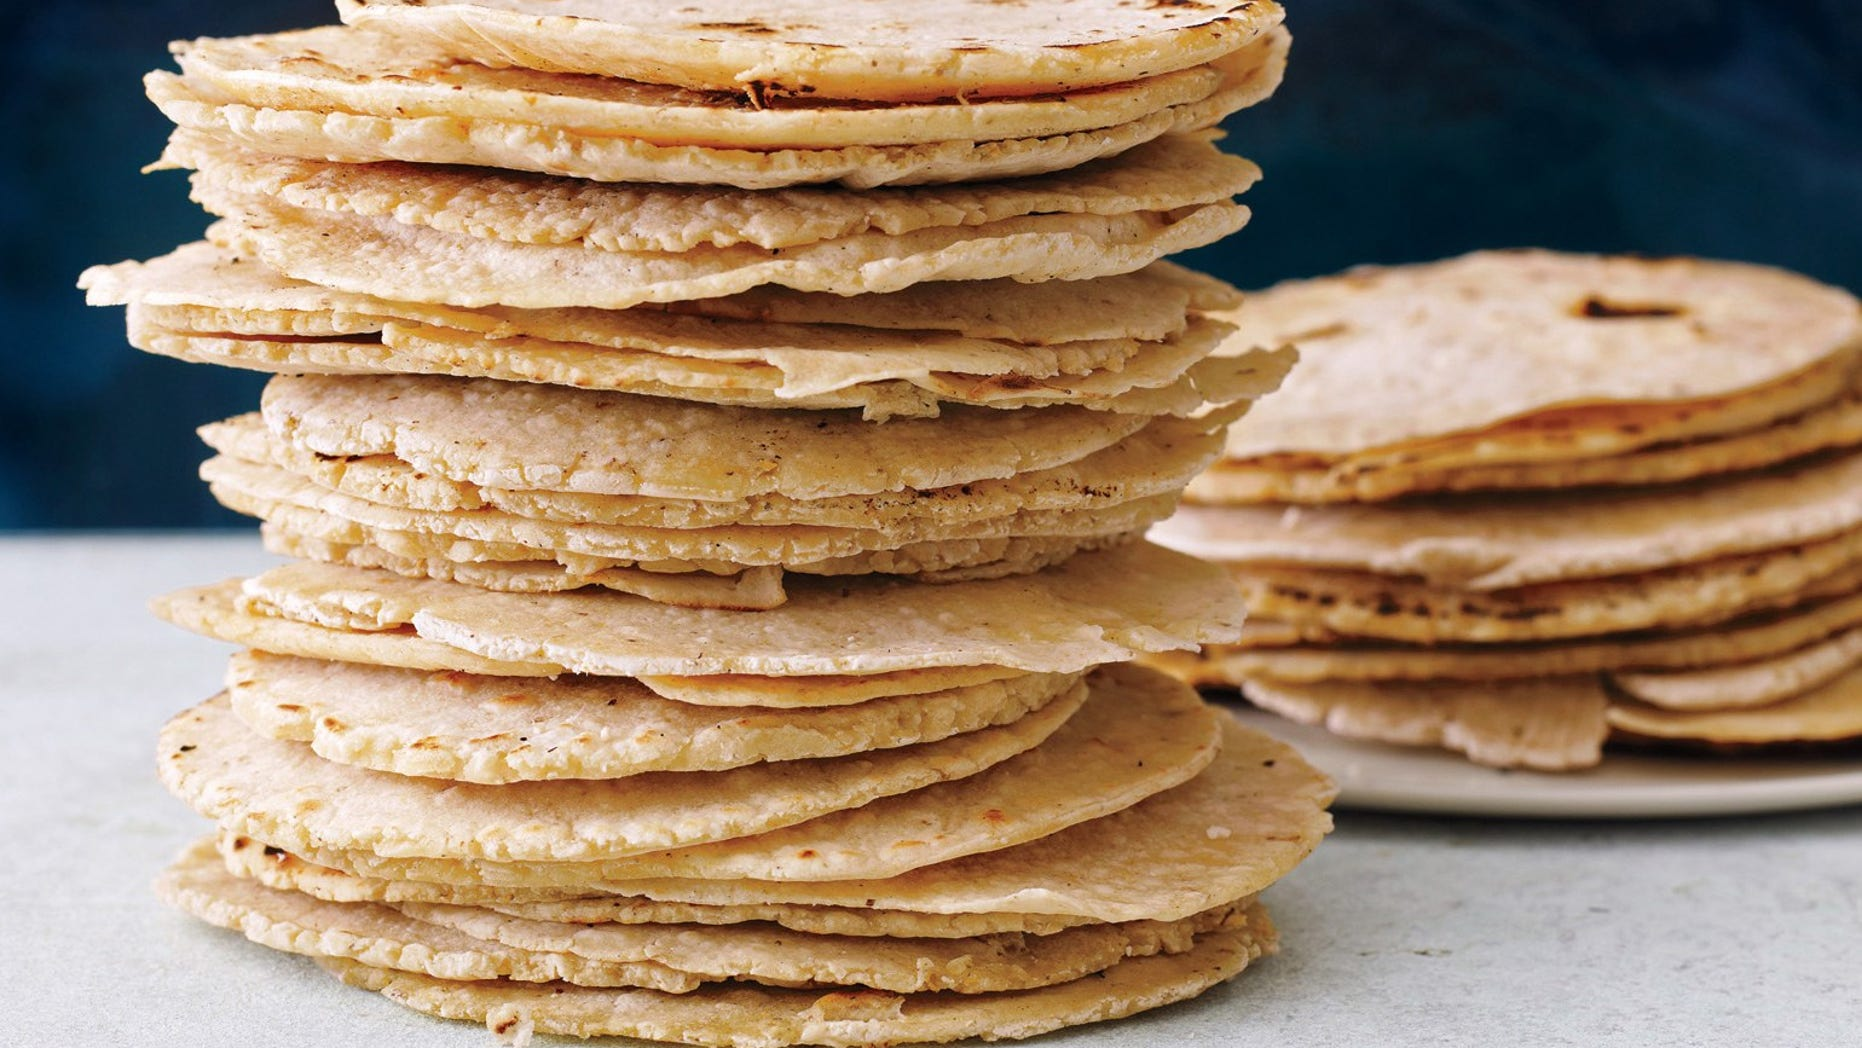 What's the real deal with corn versus flour tortillas?